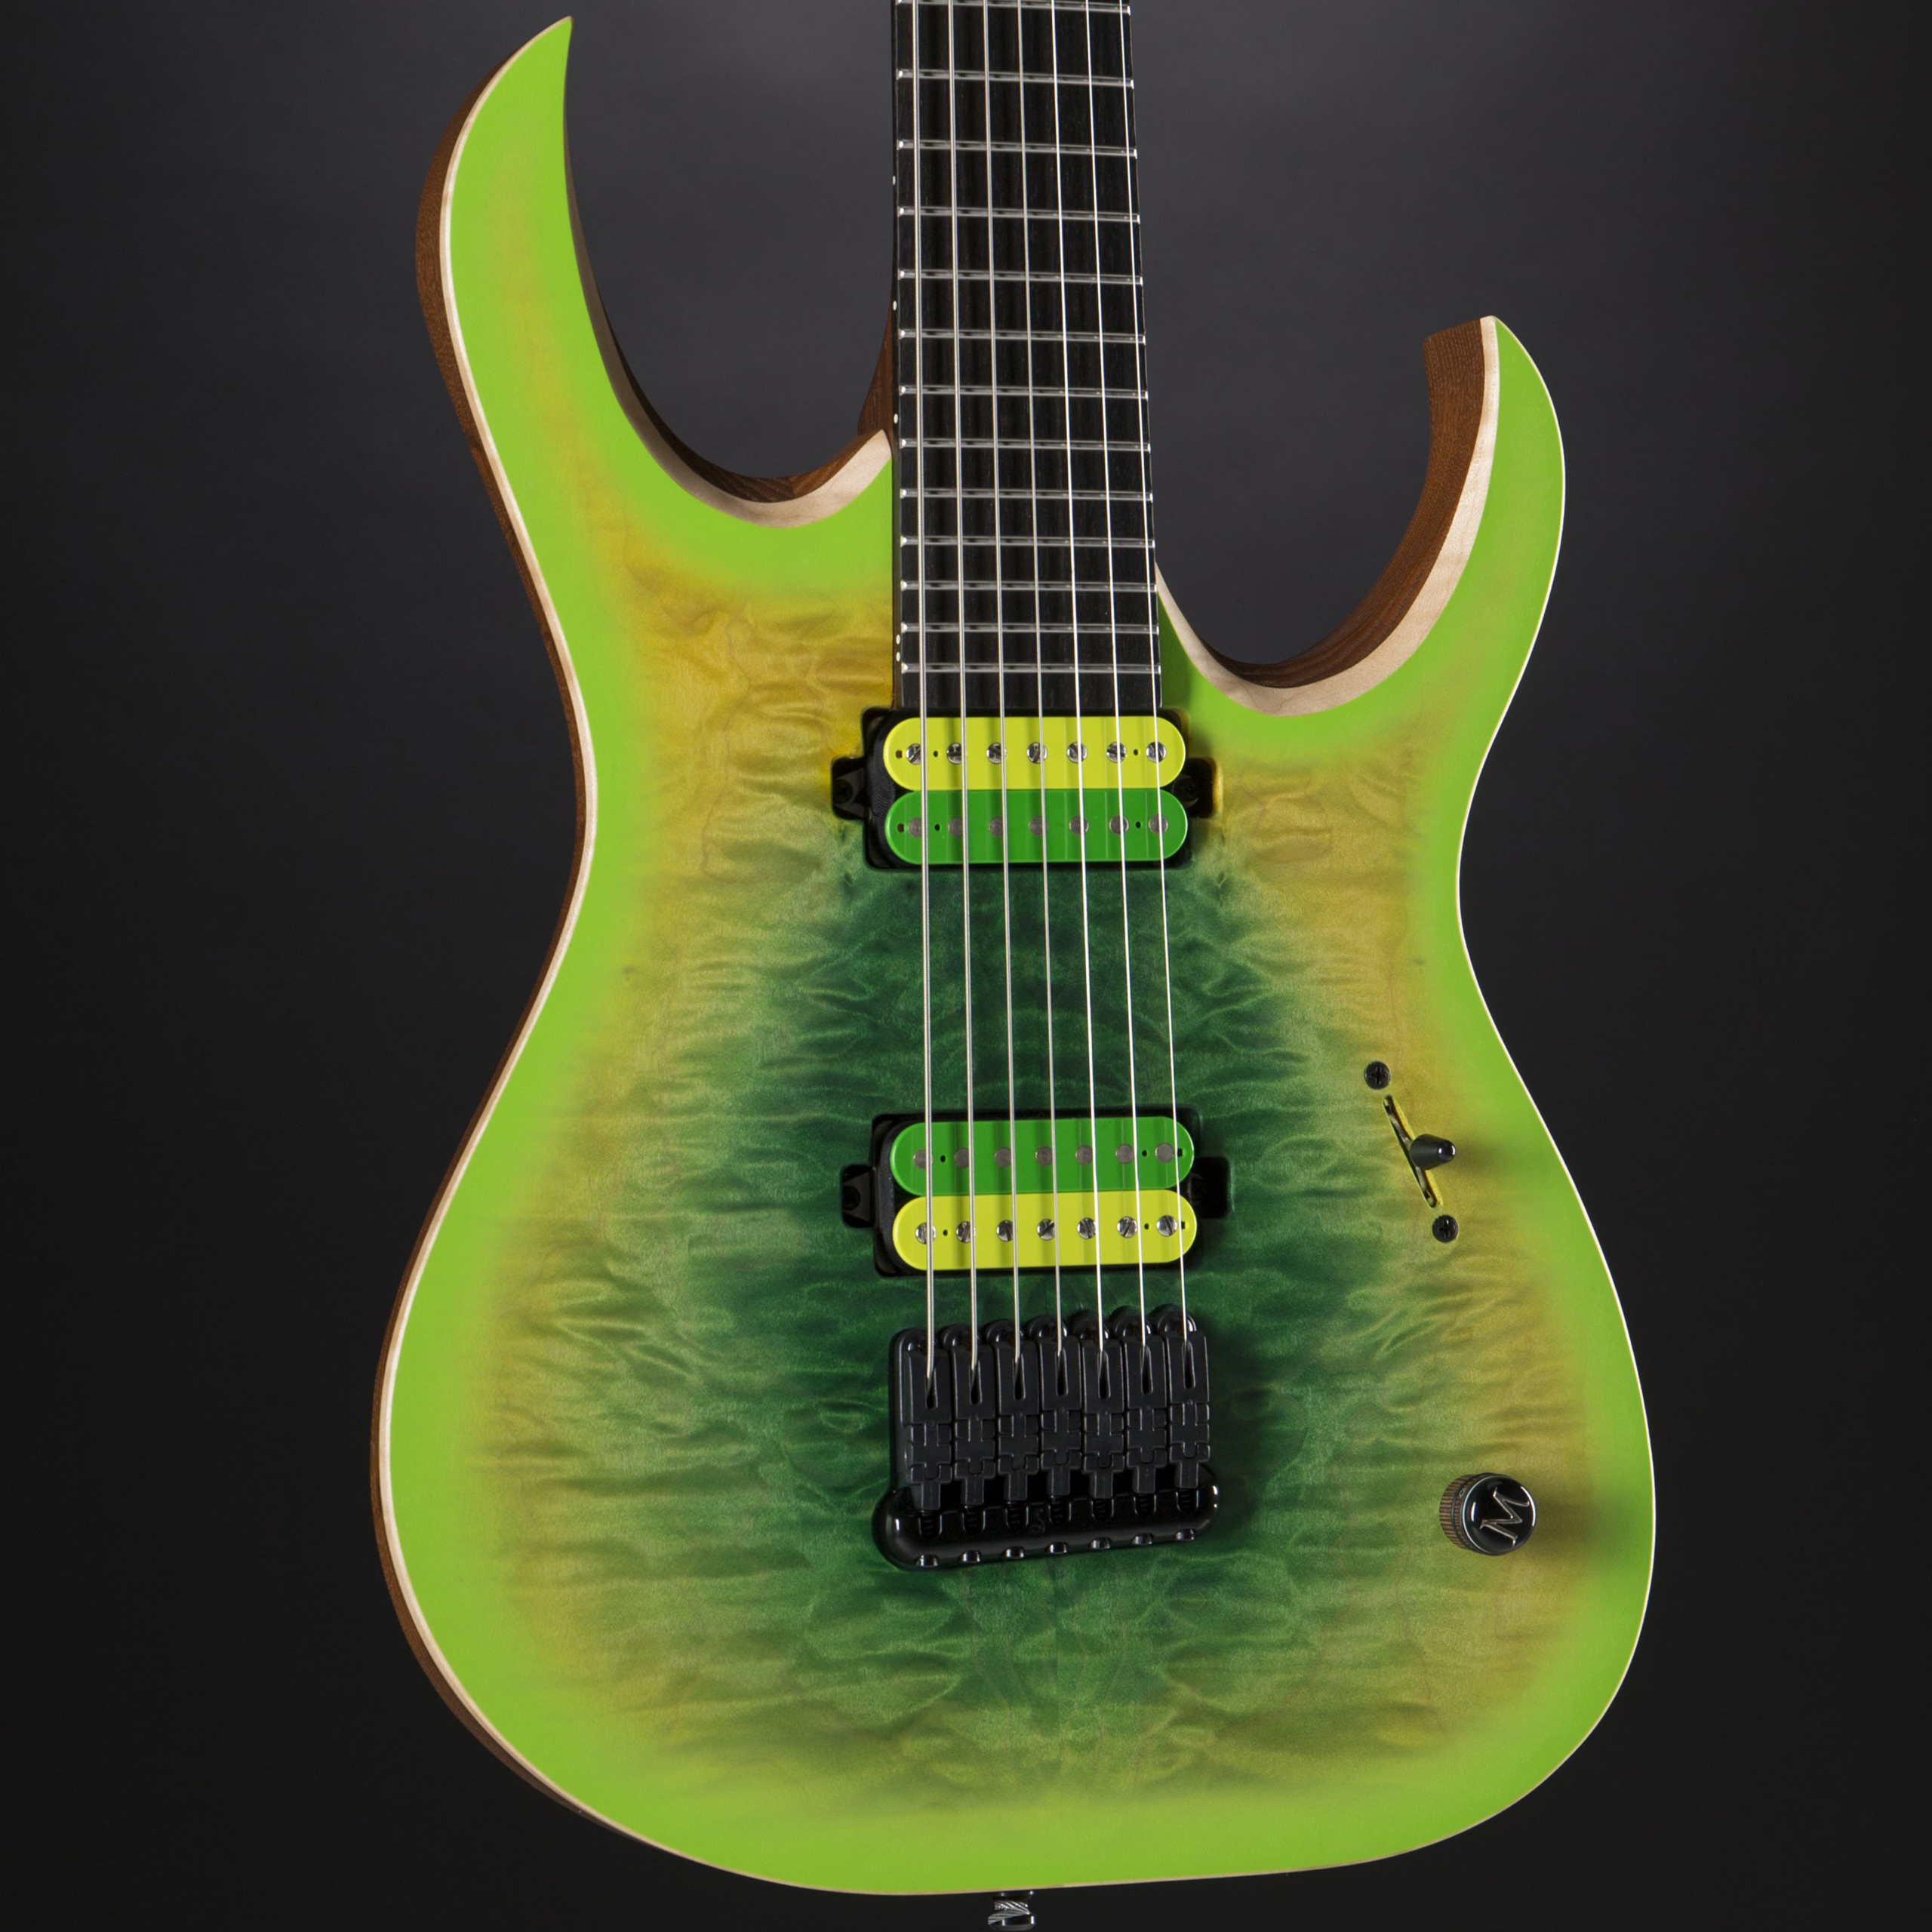 MAYONES Duvell QATSI 7 Juice Burst Limited Edition John Browne Signature Korpus